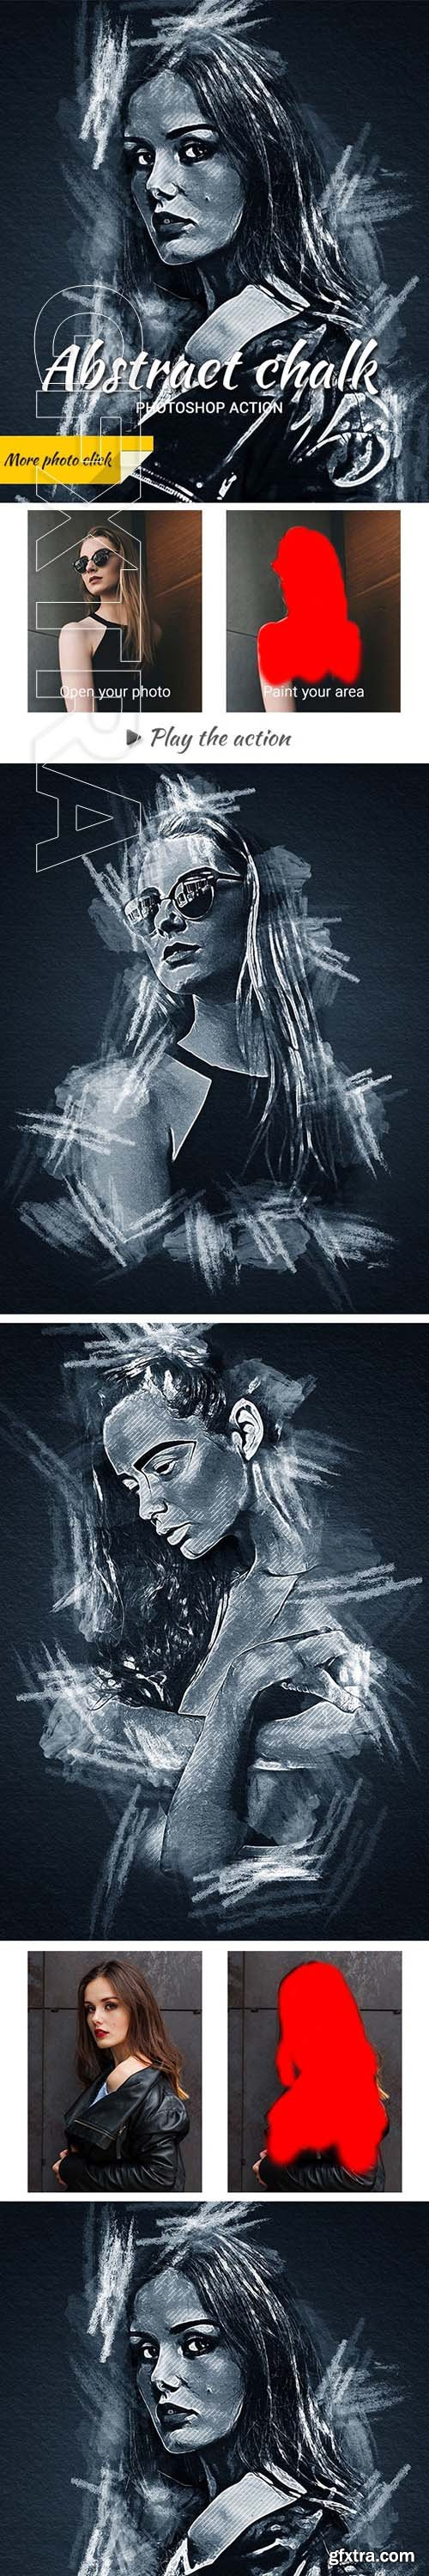 GraphicRiver - Abstract Chalk Photoshop Action 24462245